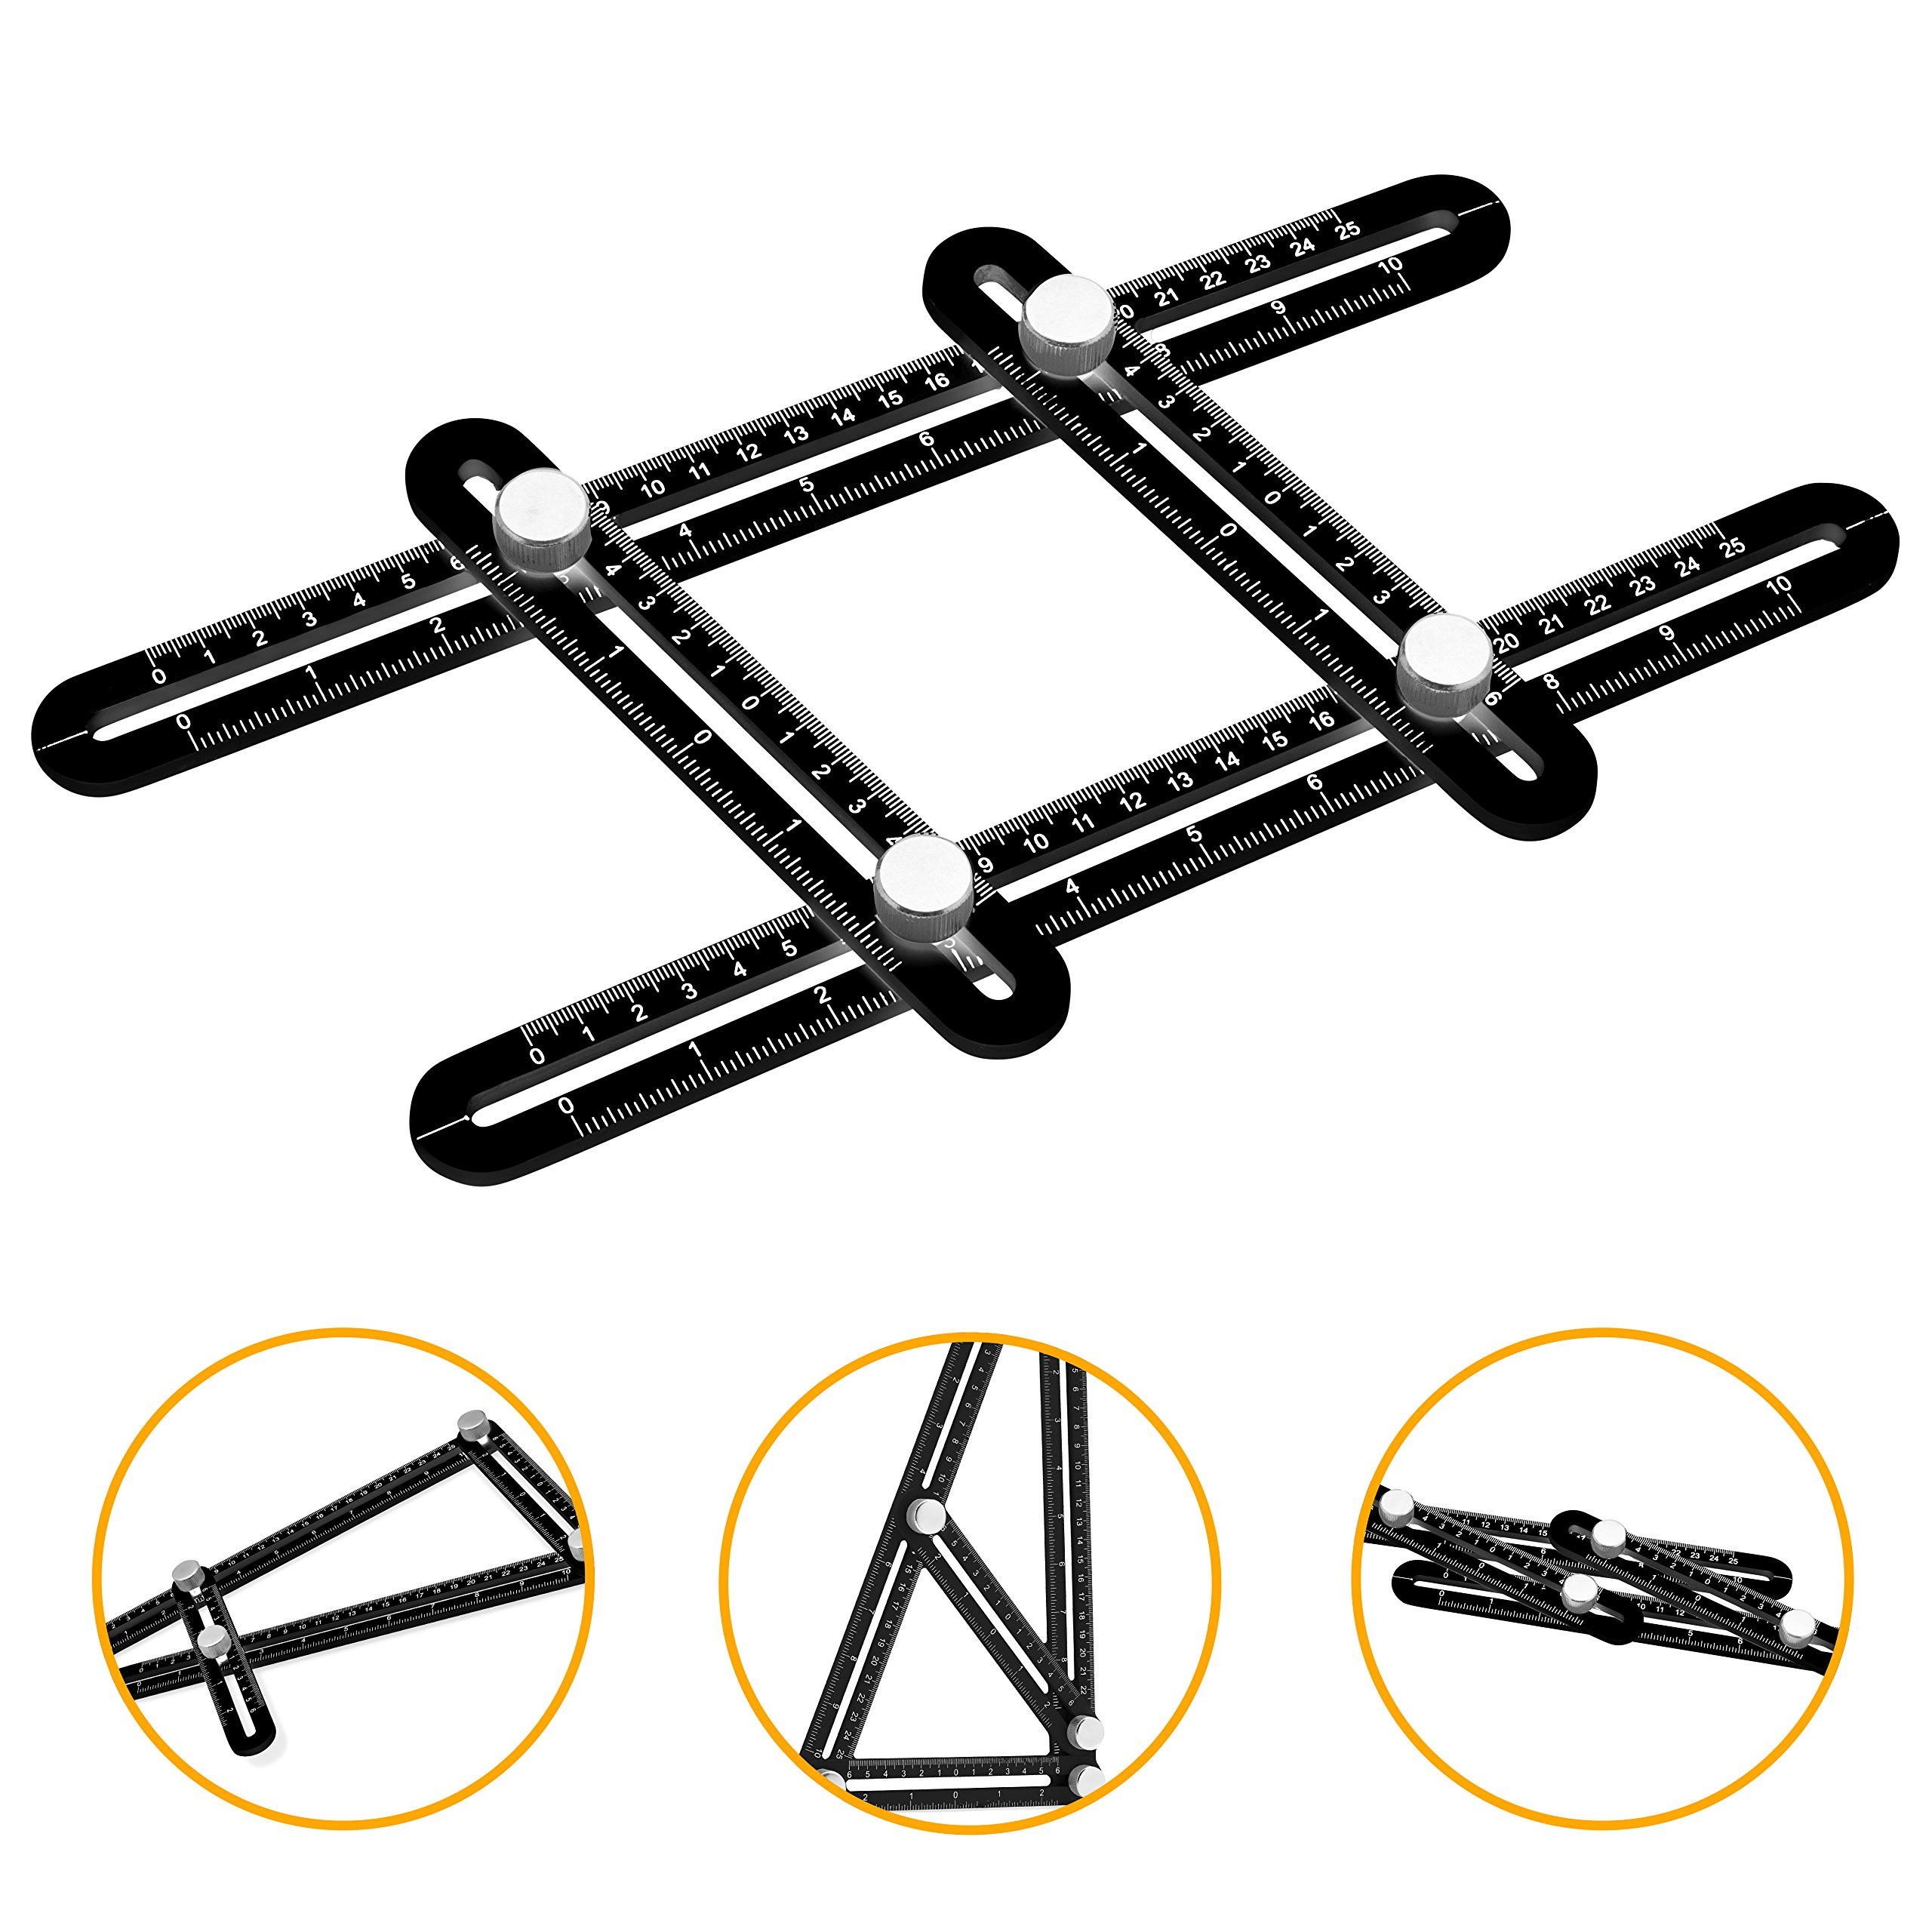 Universal Angularizer Ruler and Multi-Angle Measuring Tool in Black - Template Tool Makes Great Gifts for Men Him Husband Dad Father DIY